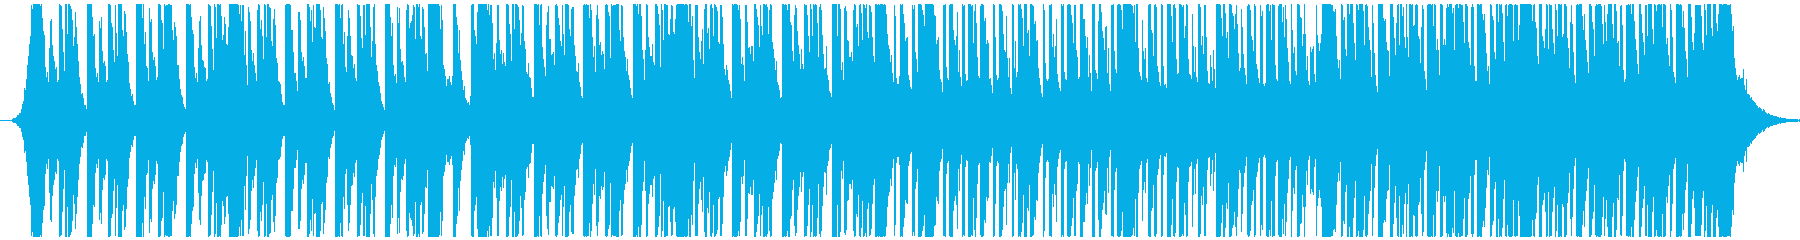 Percussion Music's reproduced waveform